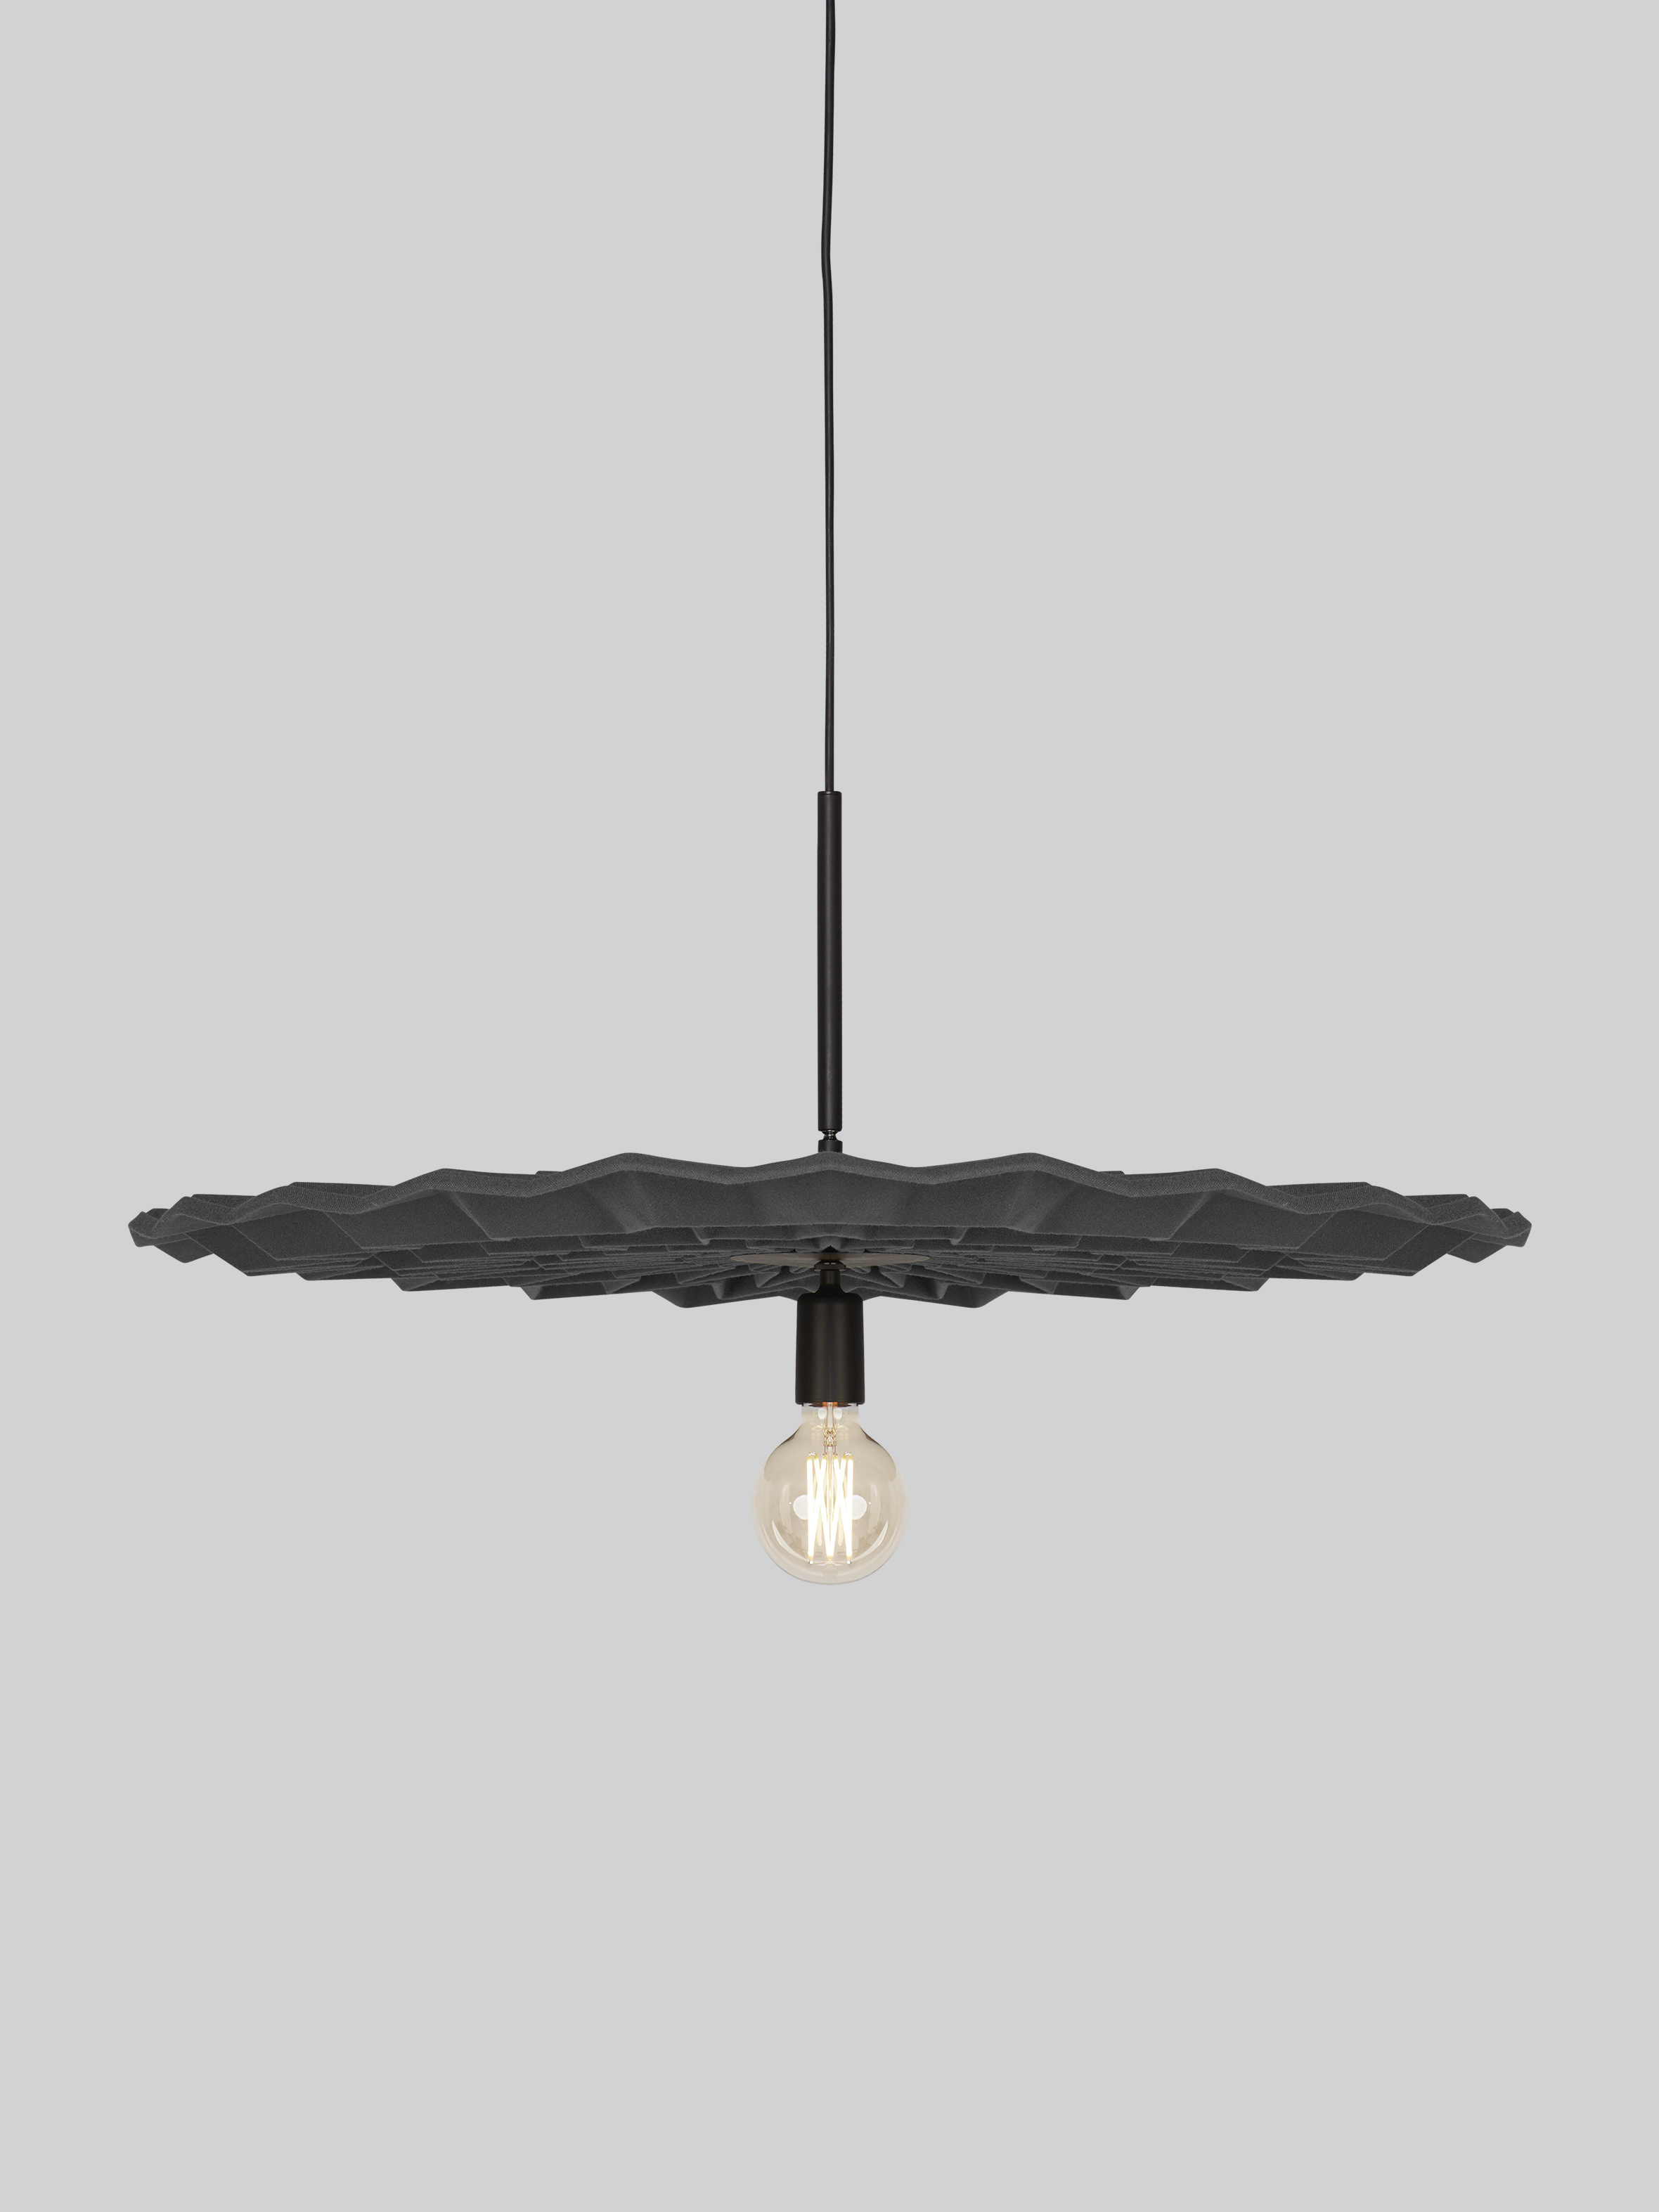 Northern Lighting Has A New Contemporary Lighting Design2 contemporary lighting design Northern Lighting Has A New Contemporary Lighting Design! Northern Lighting Has A New Contemporary Lighting Design2